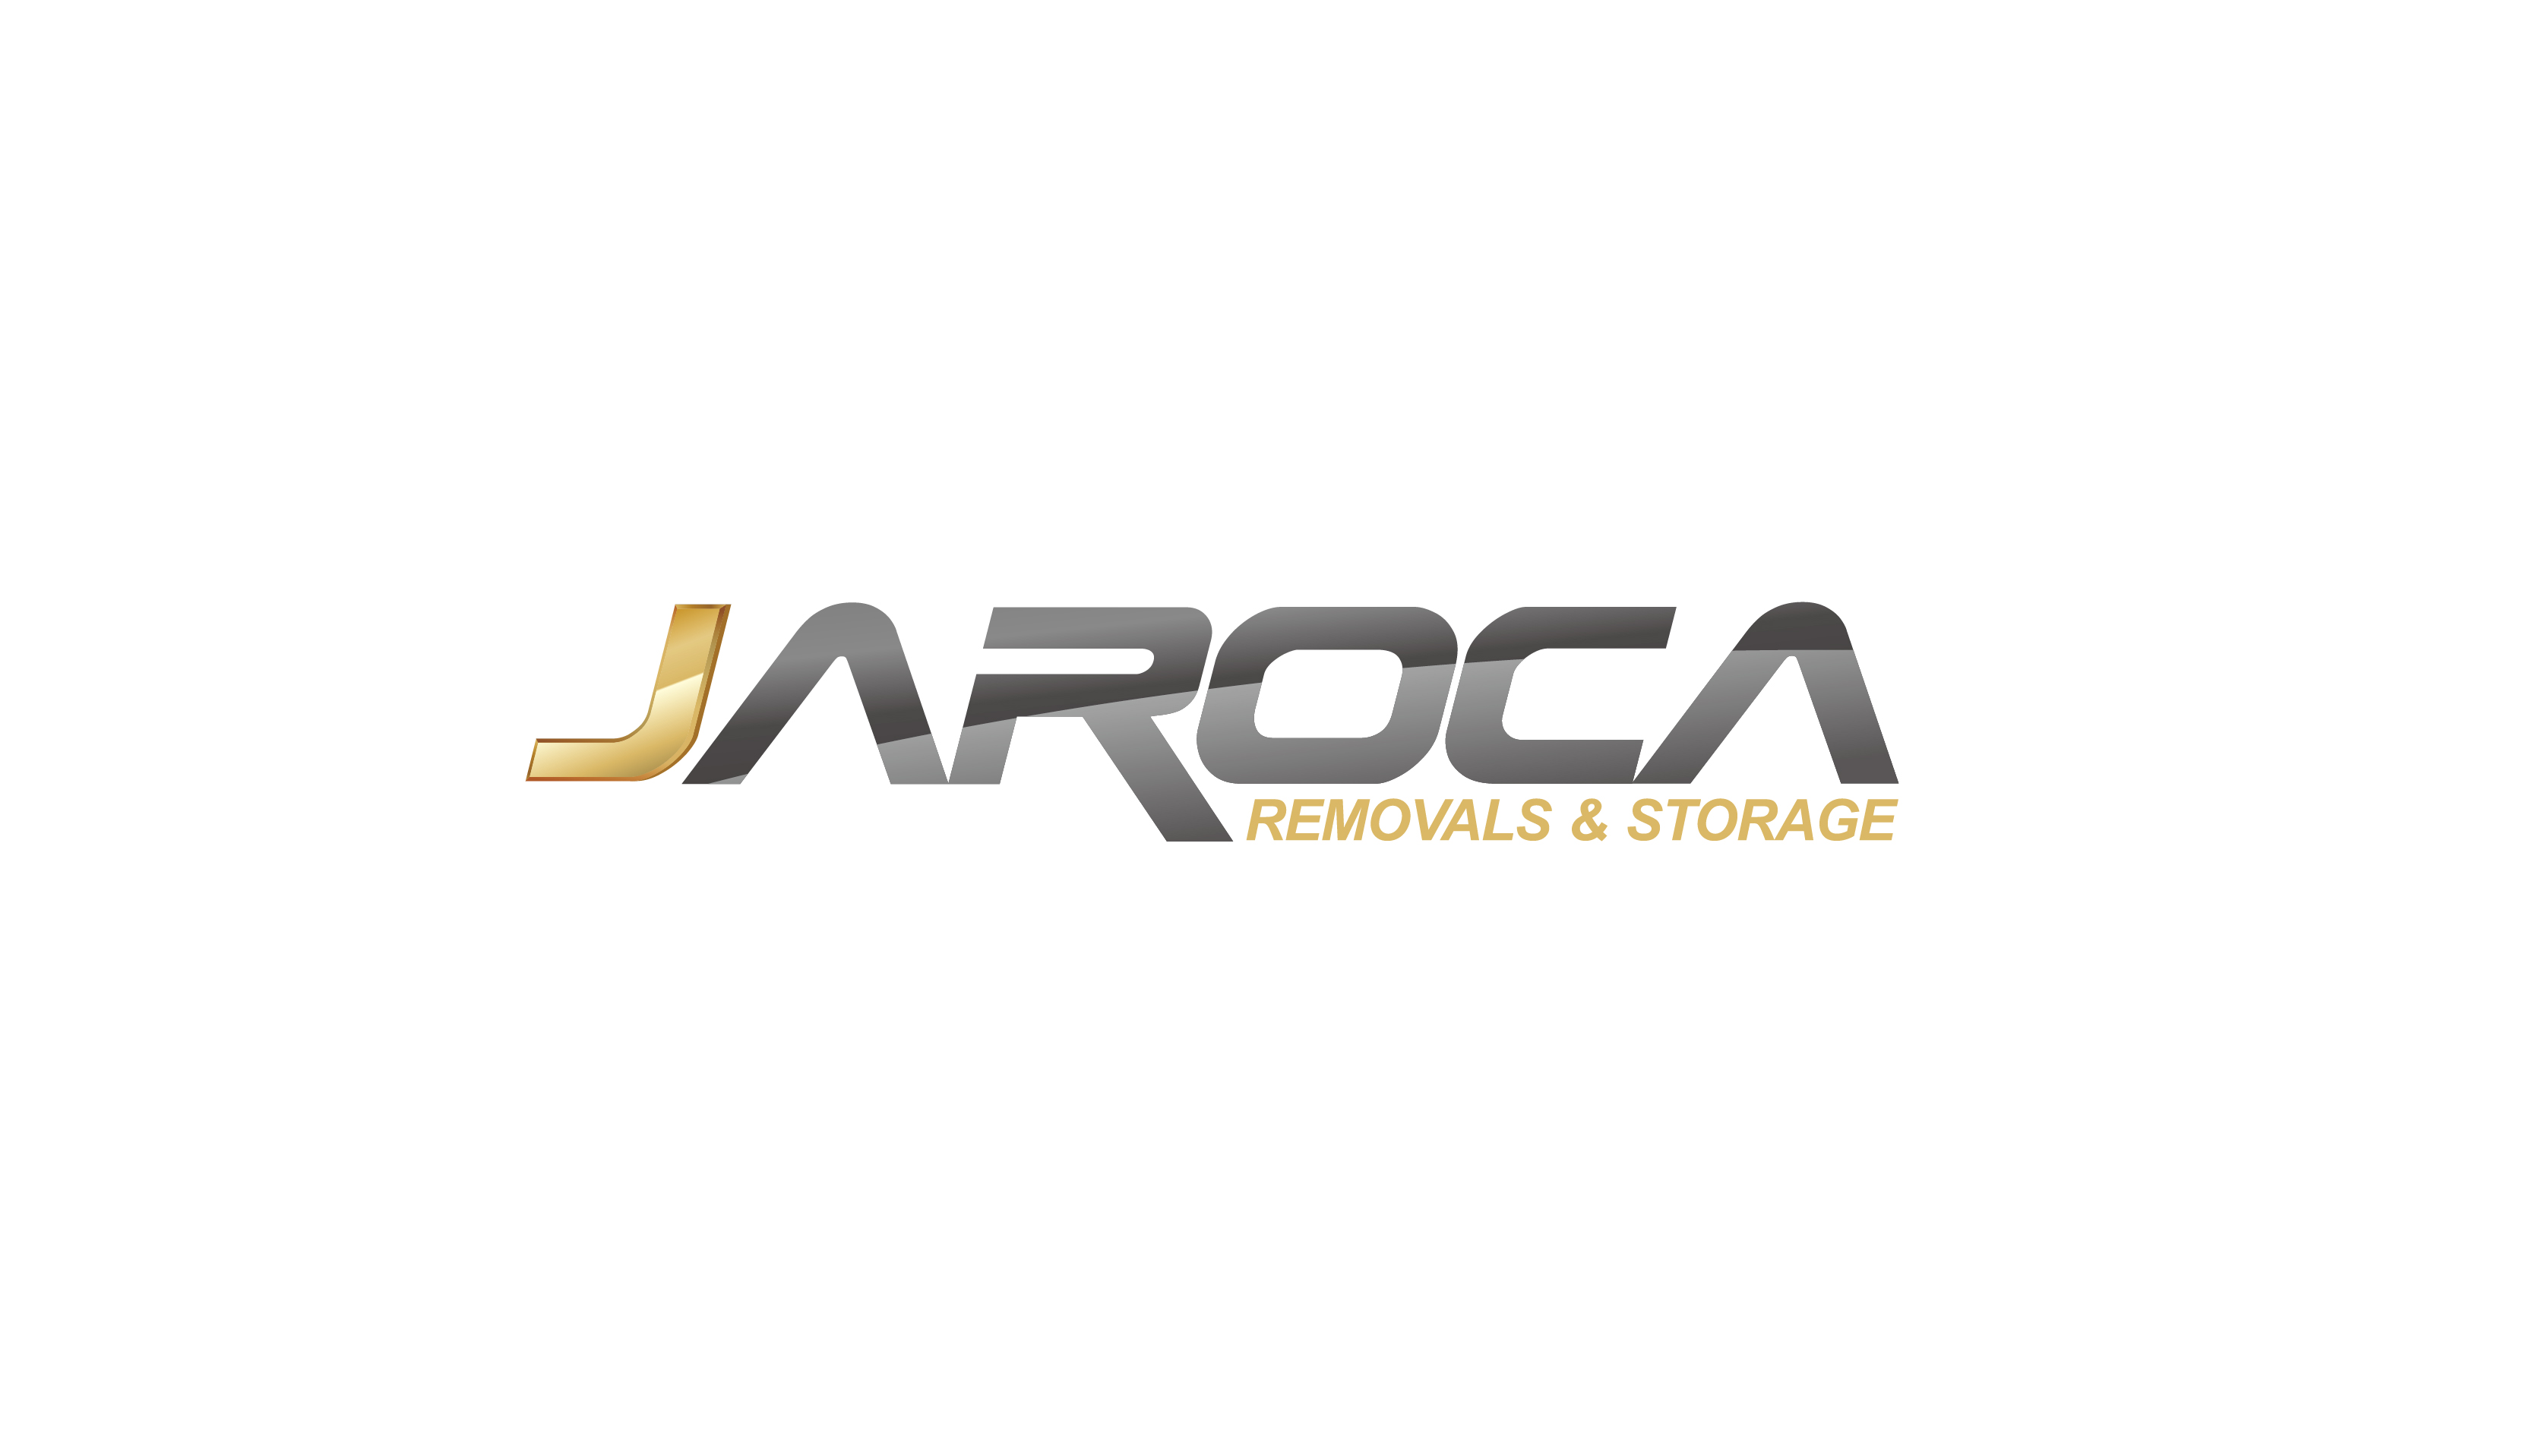 Jaroca Removals & Storage